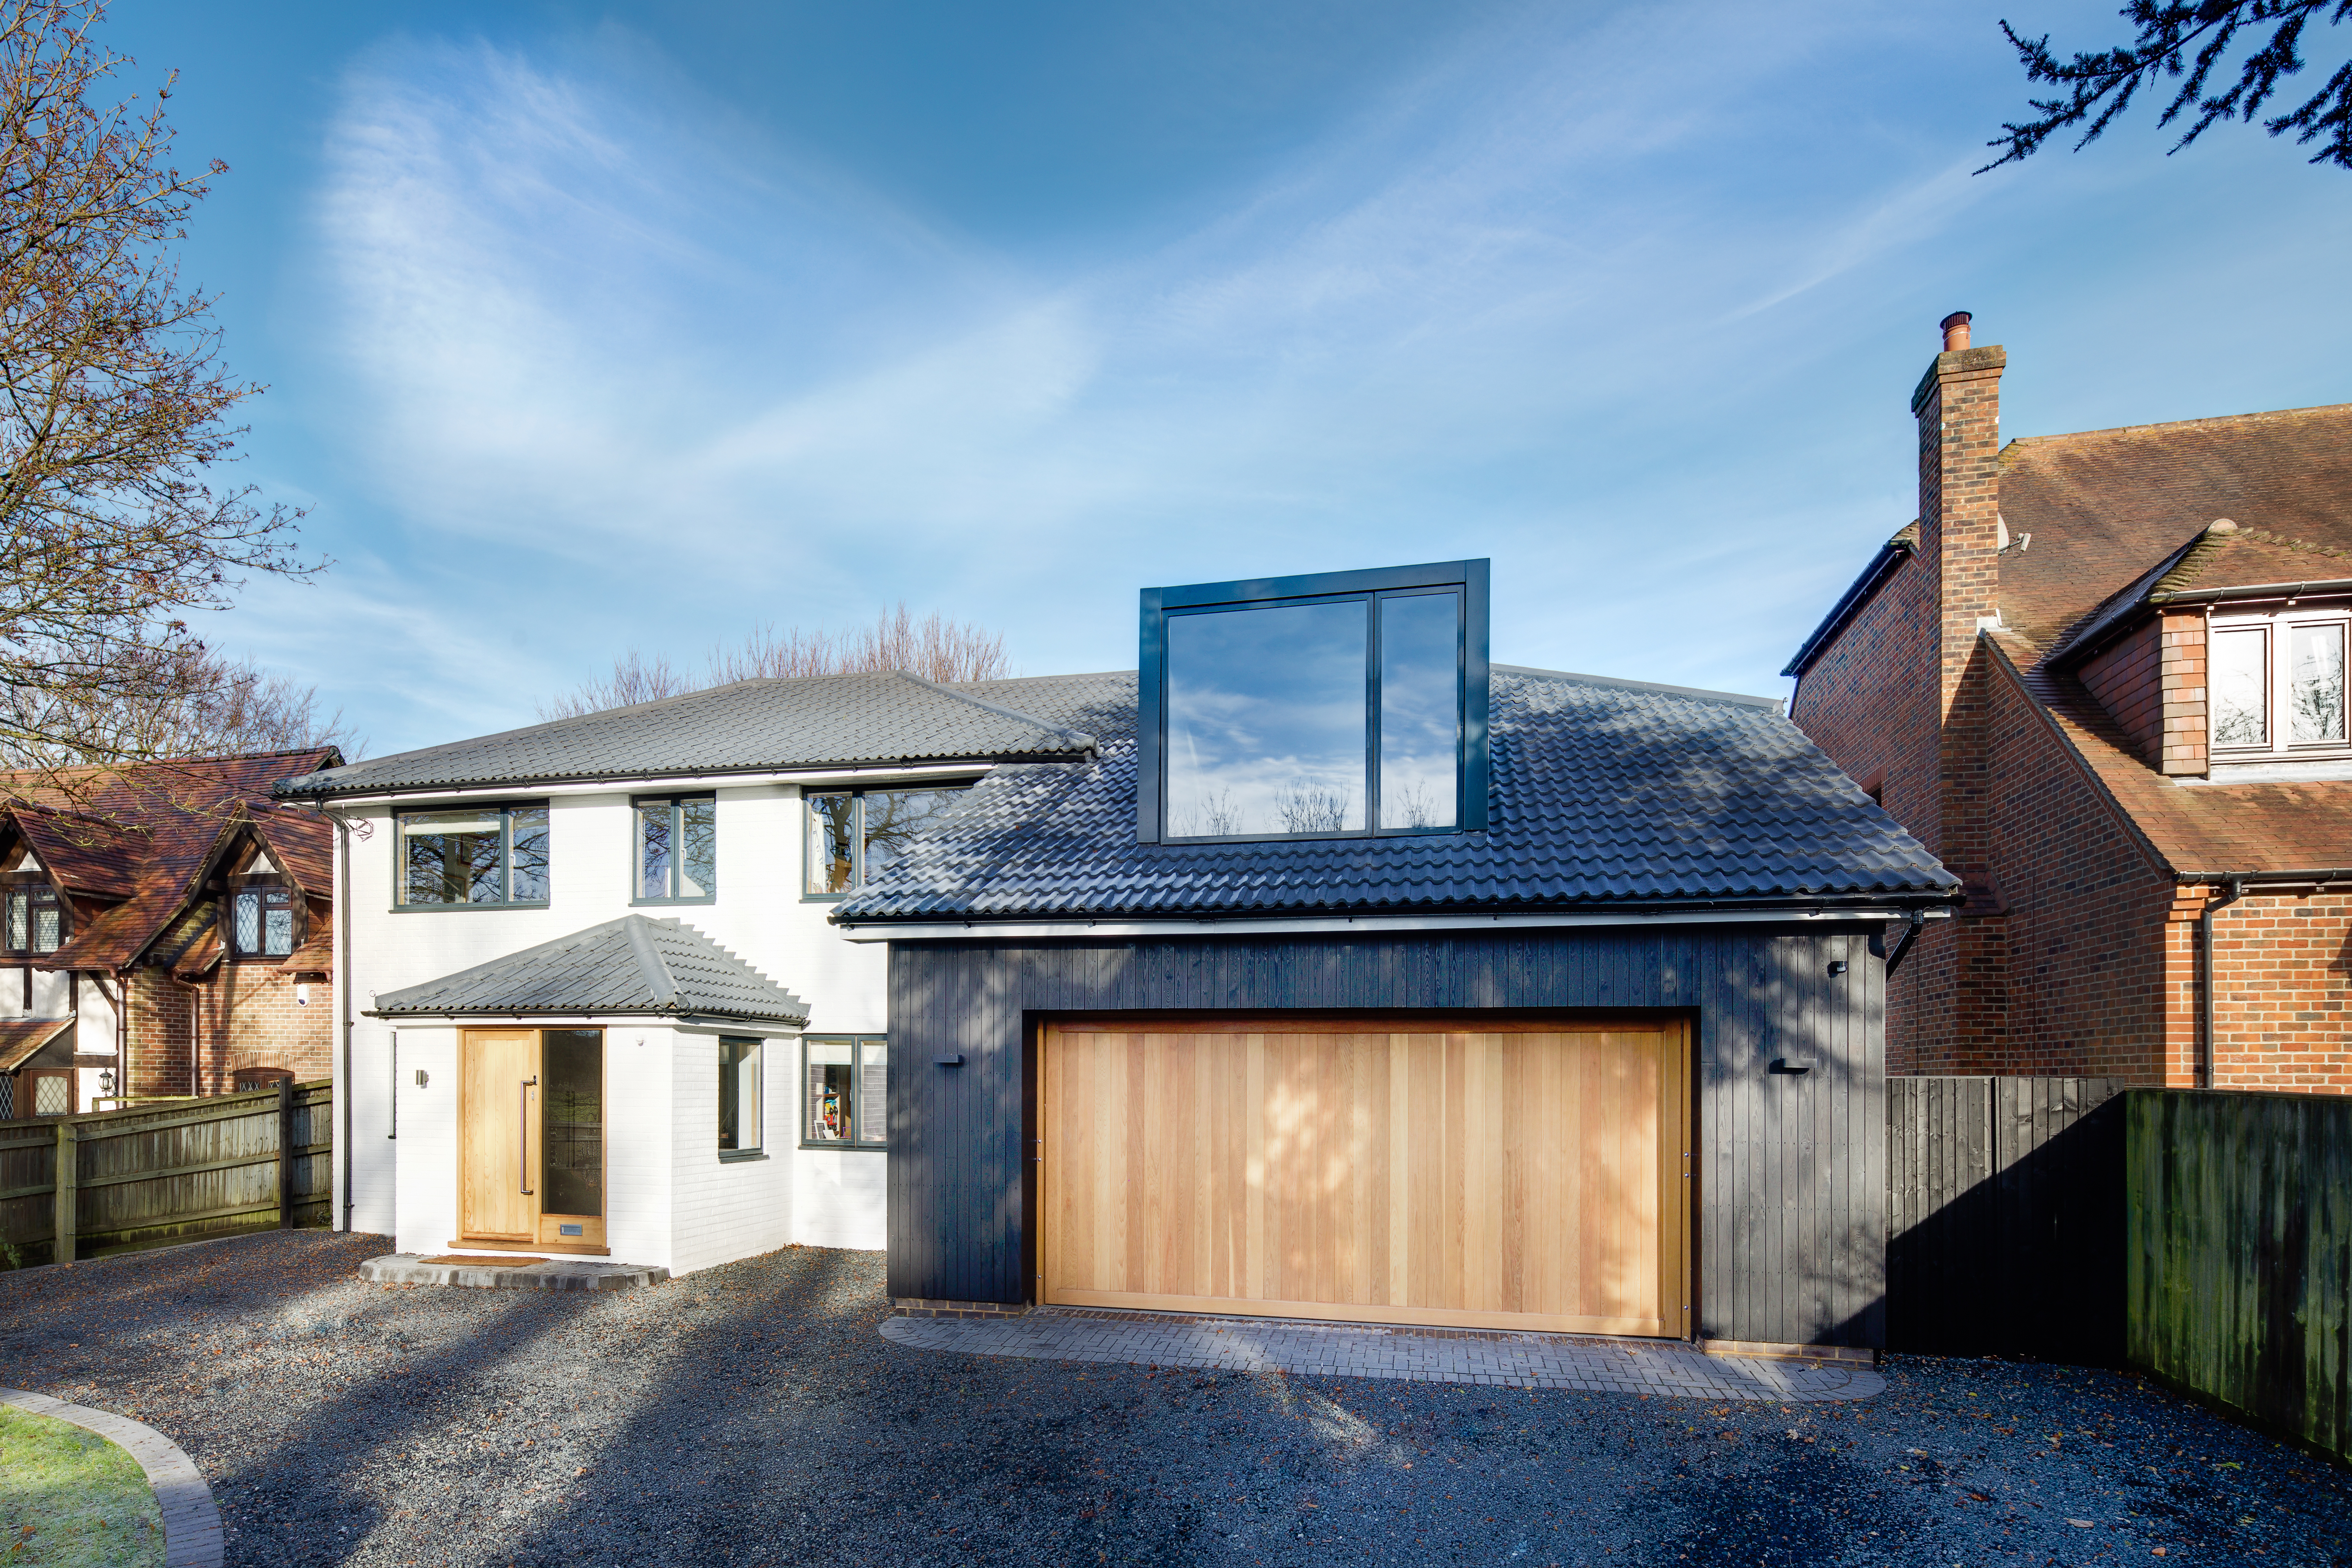 Garage Conversions How To Cost Design And Plan Your Project Real Homes